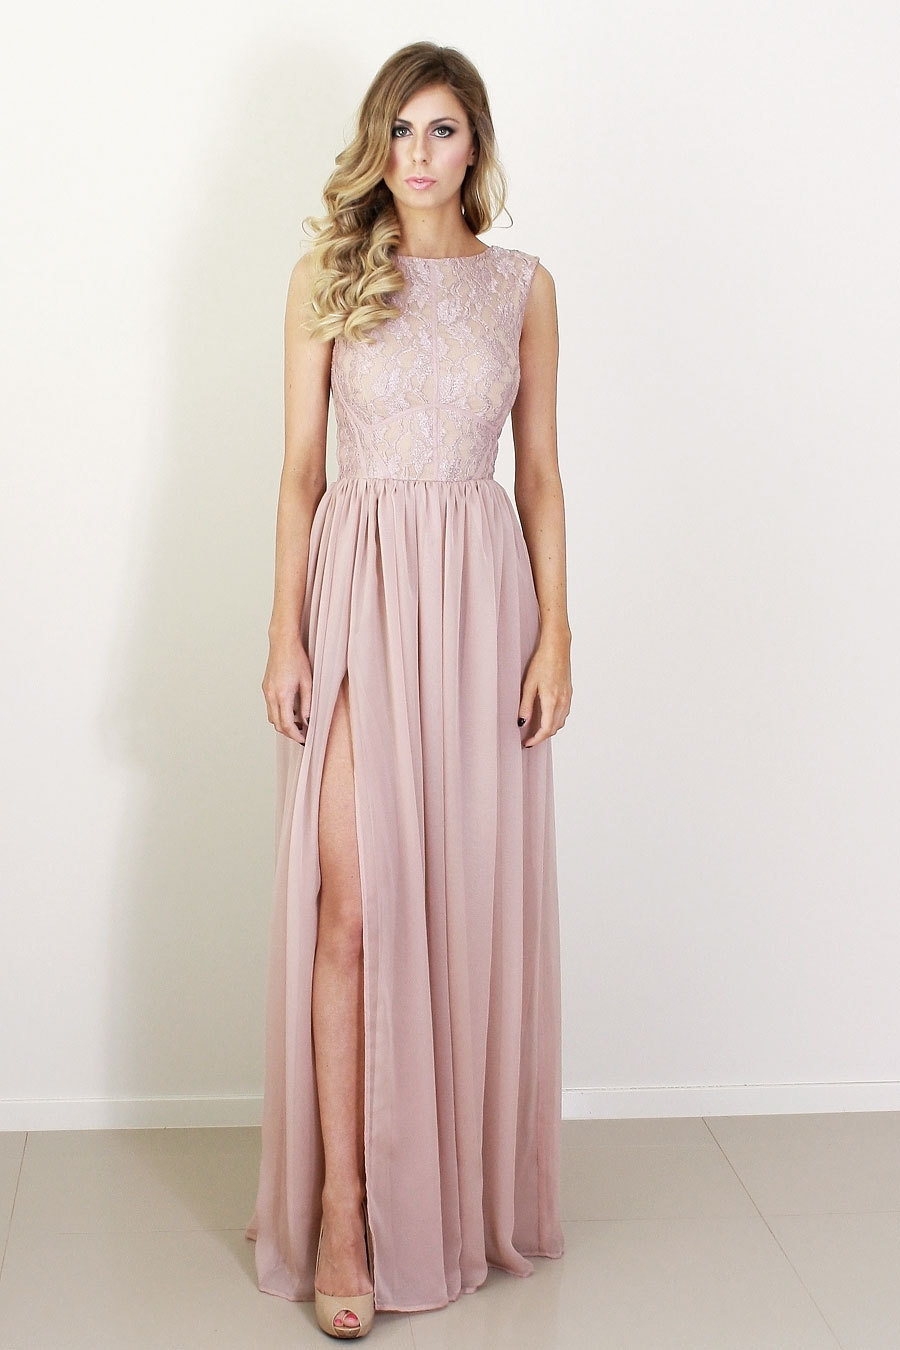 5897ff949ea Blush silk and lace bridesmaid dress.full original original